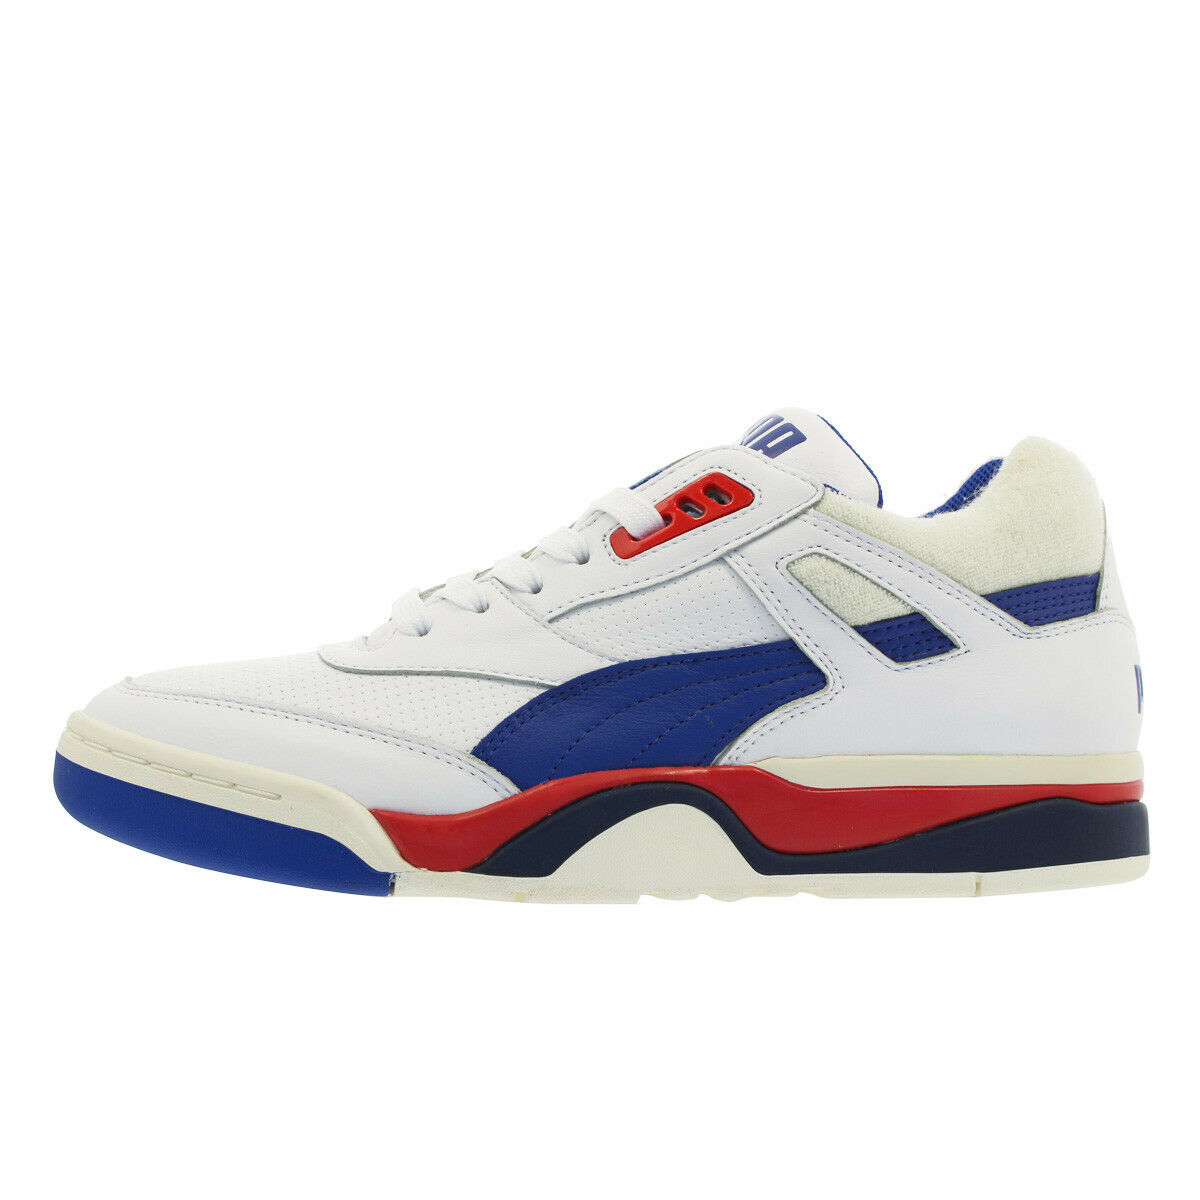 Puma Men's PALACE GUARD OG shoes Puma White bluee Red 369587-01 d